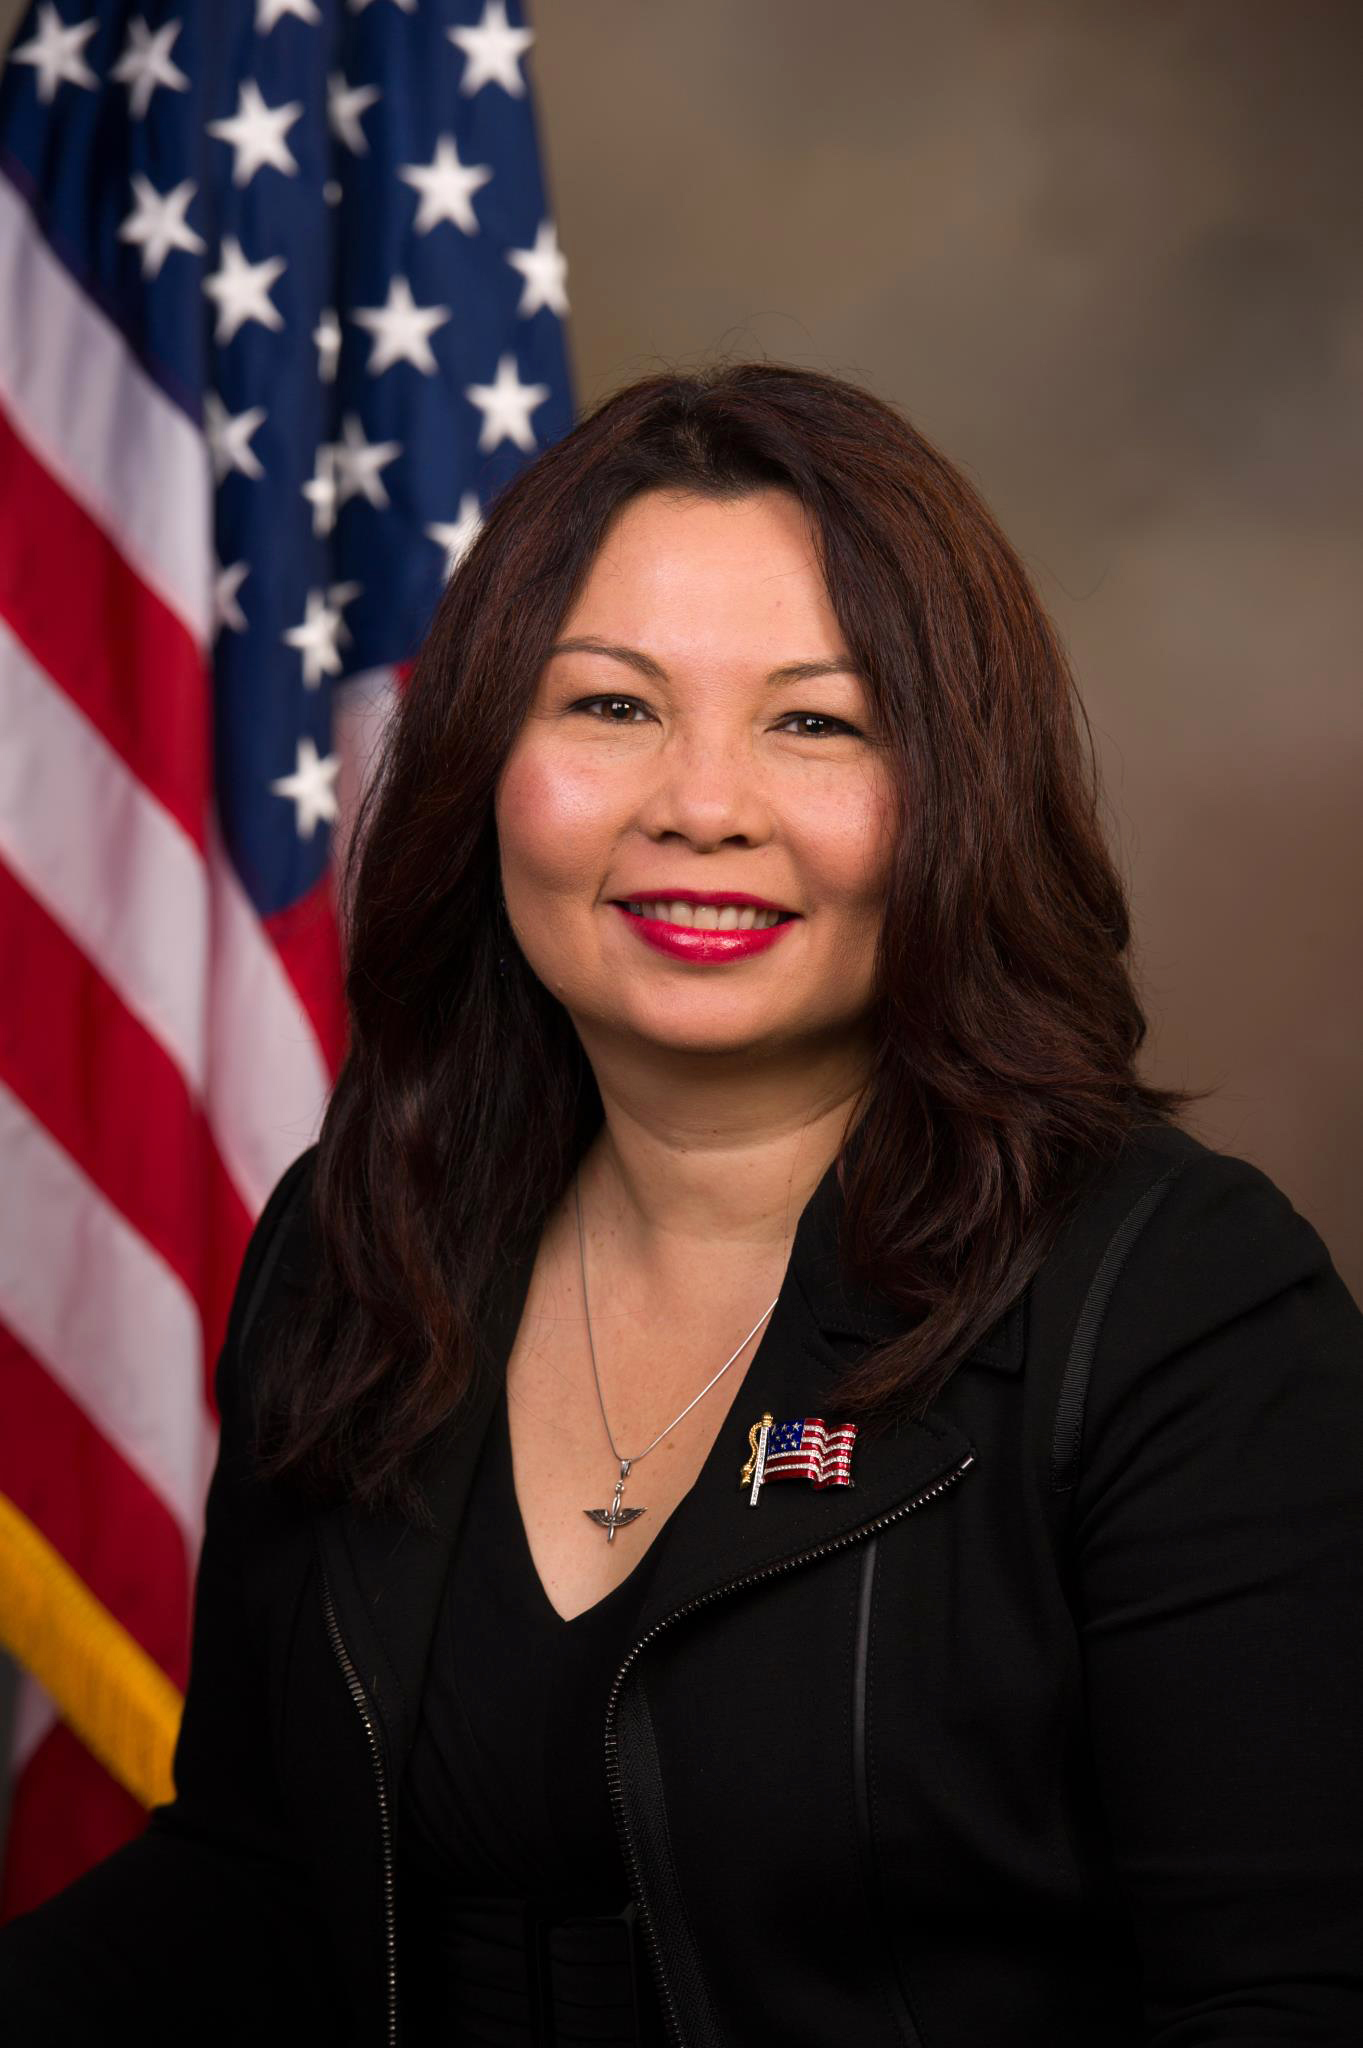 Tammy_Duckworth,_official_portrait,_113th_Congress